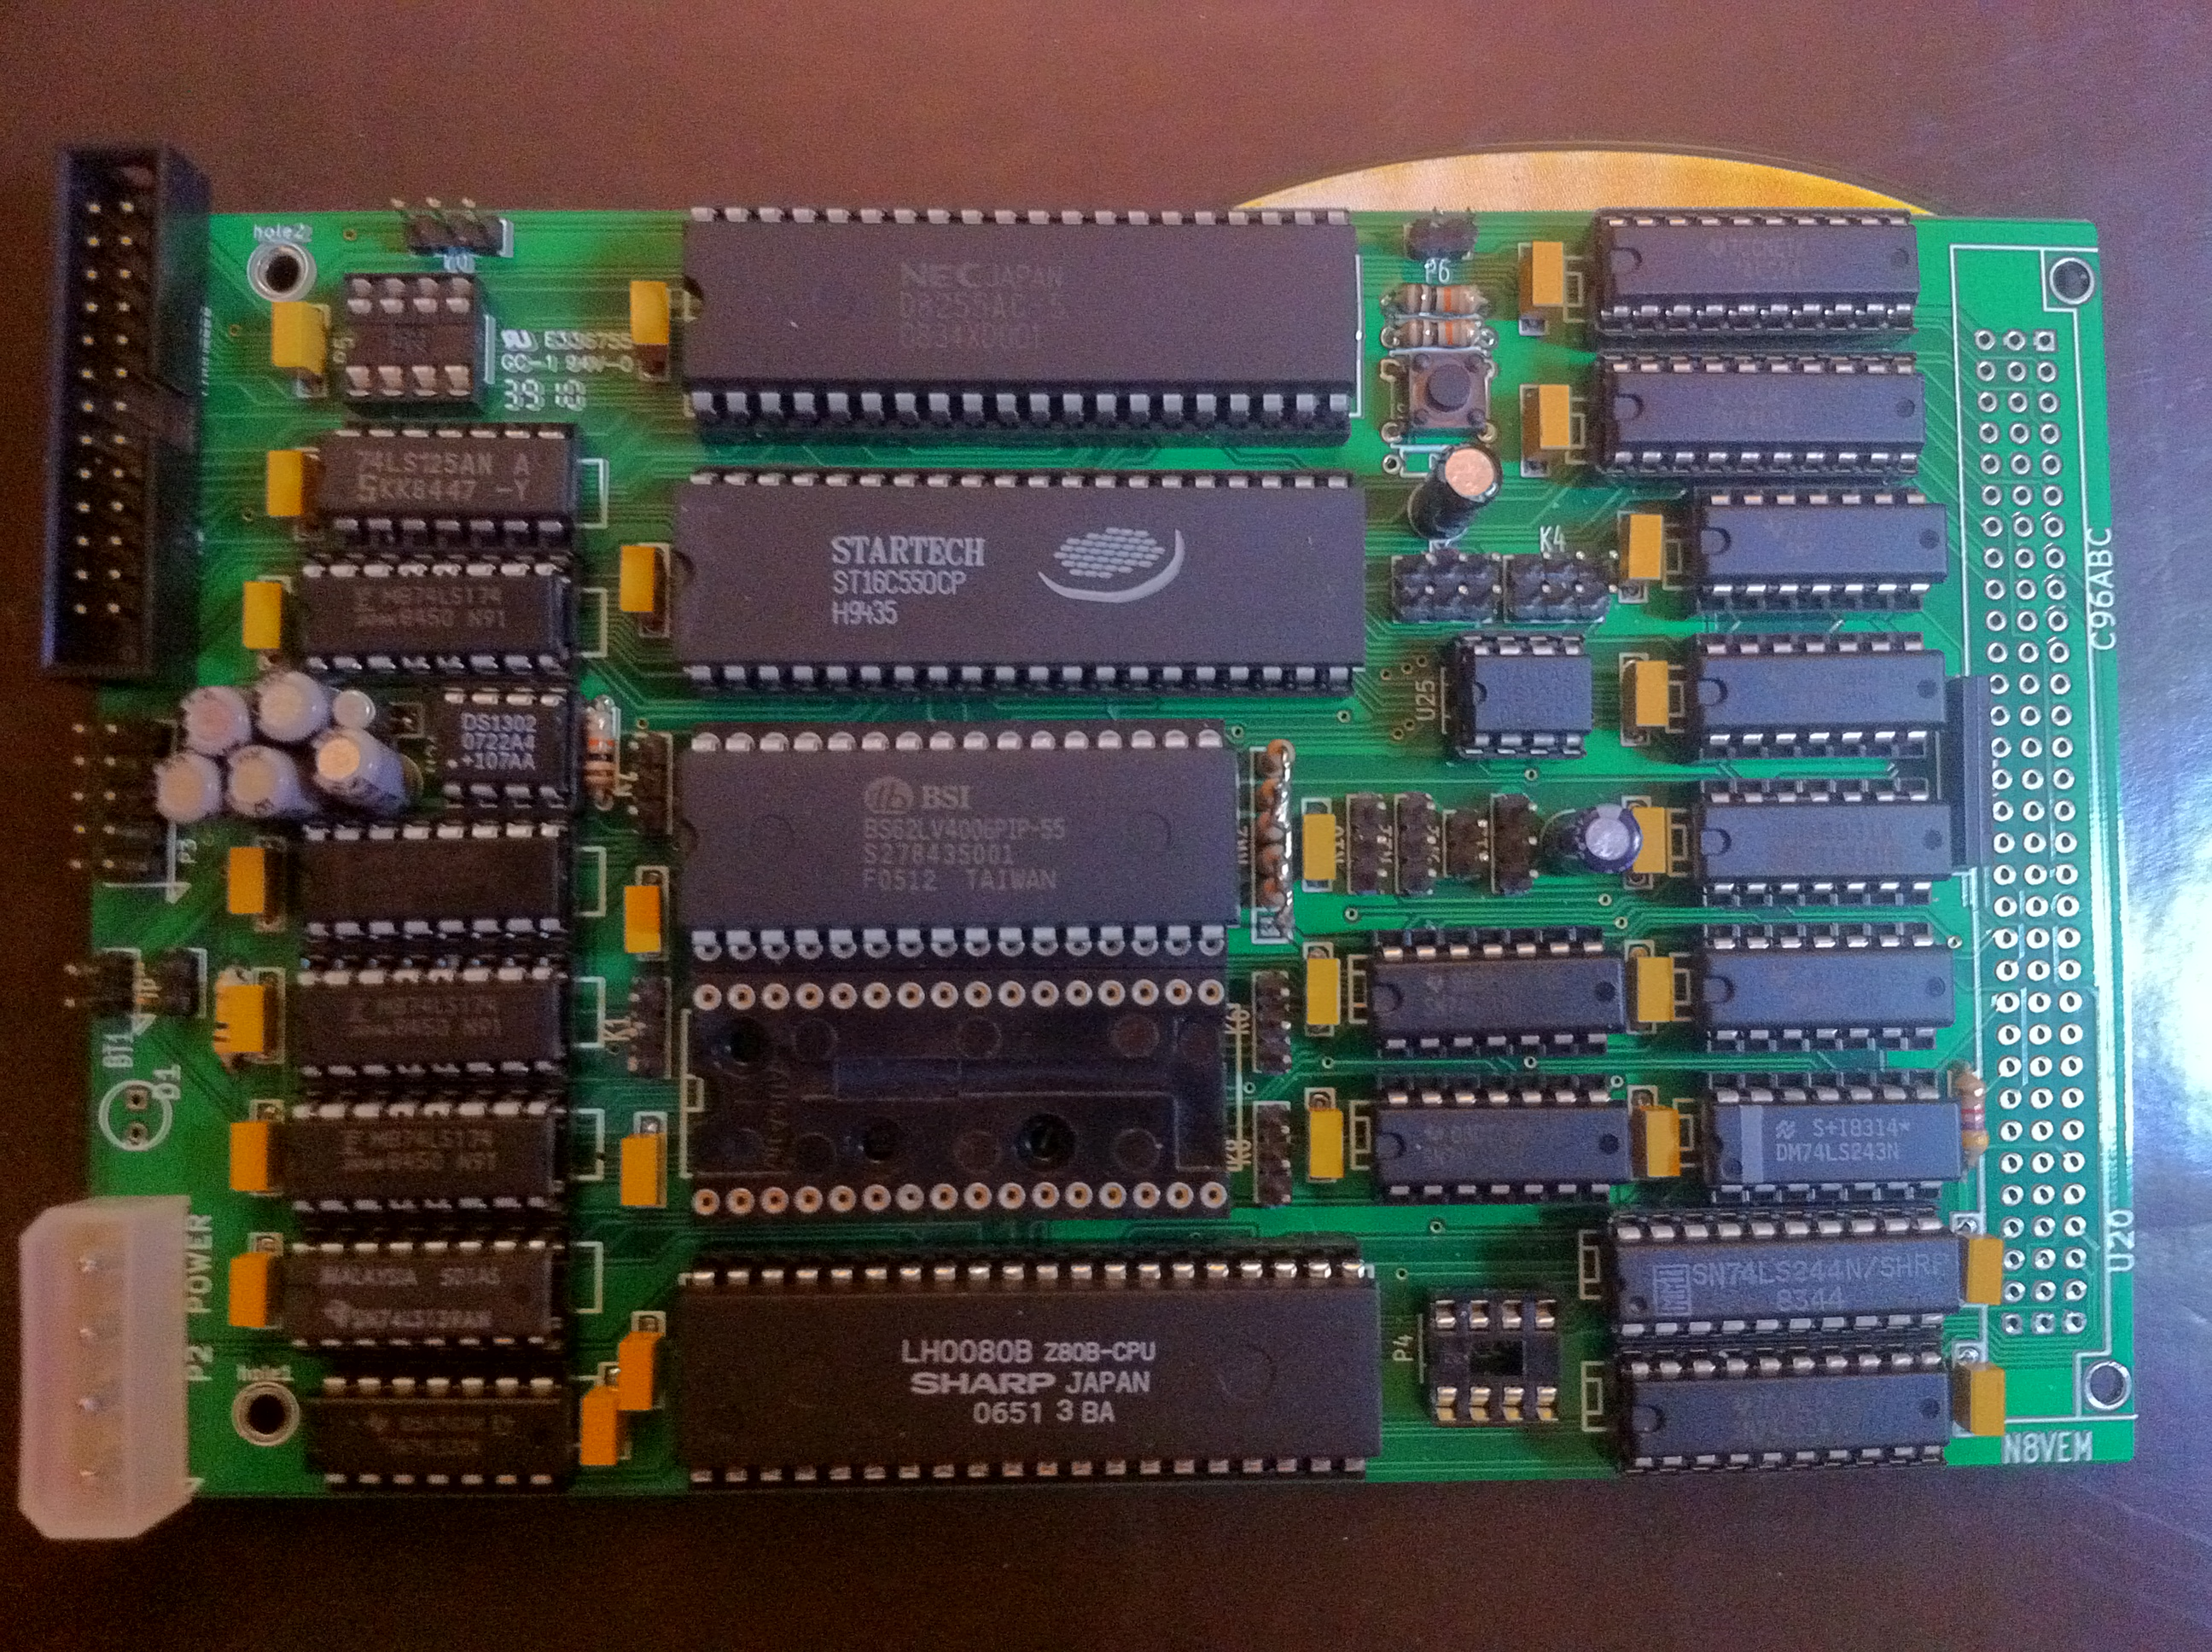 www.retrobrewcomputers.org_lib_plugins_ckgedit_fckeditor_userfiles_image_boards_sbc_sbc_v2_photos_built-up-sbc-v2.jpg